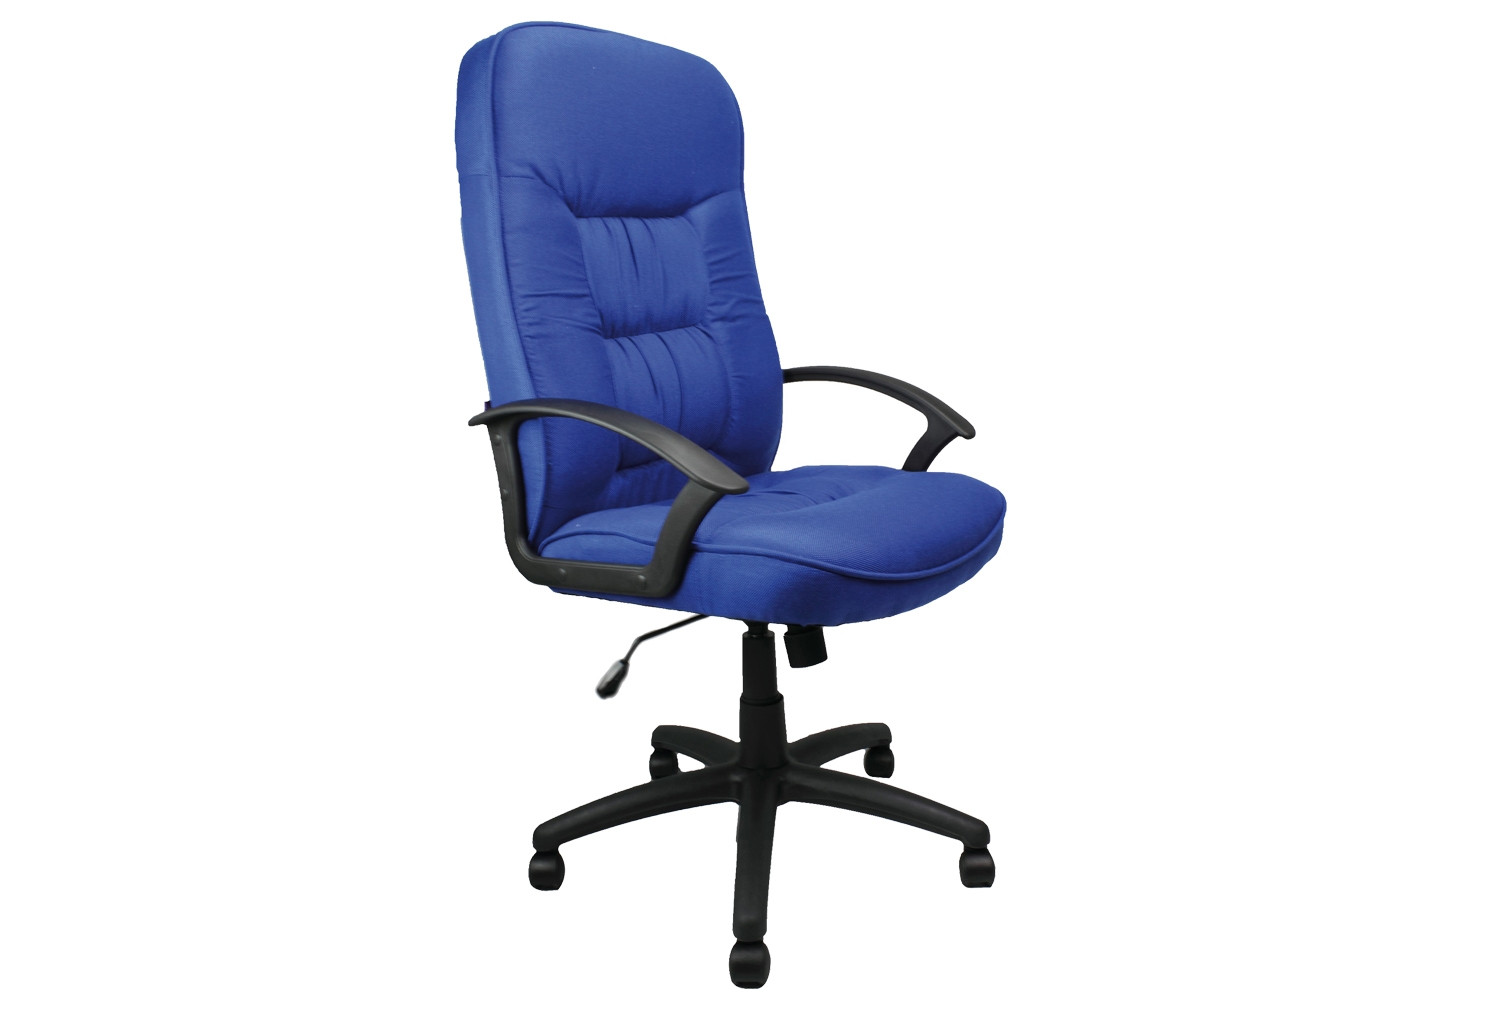 Next-Day Nero High Back Fabric Executive Chair